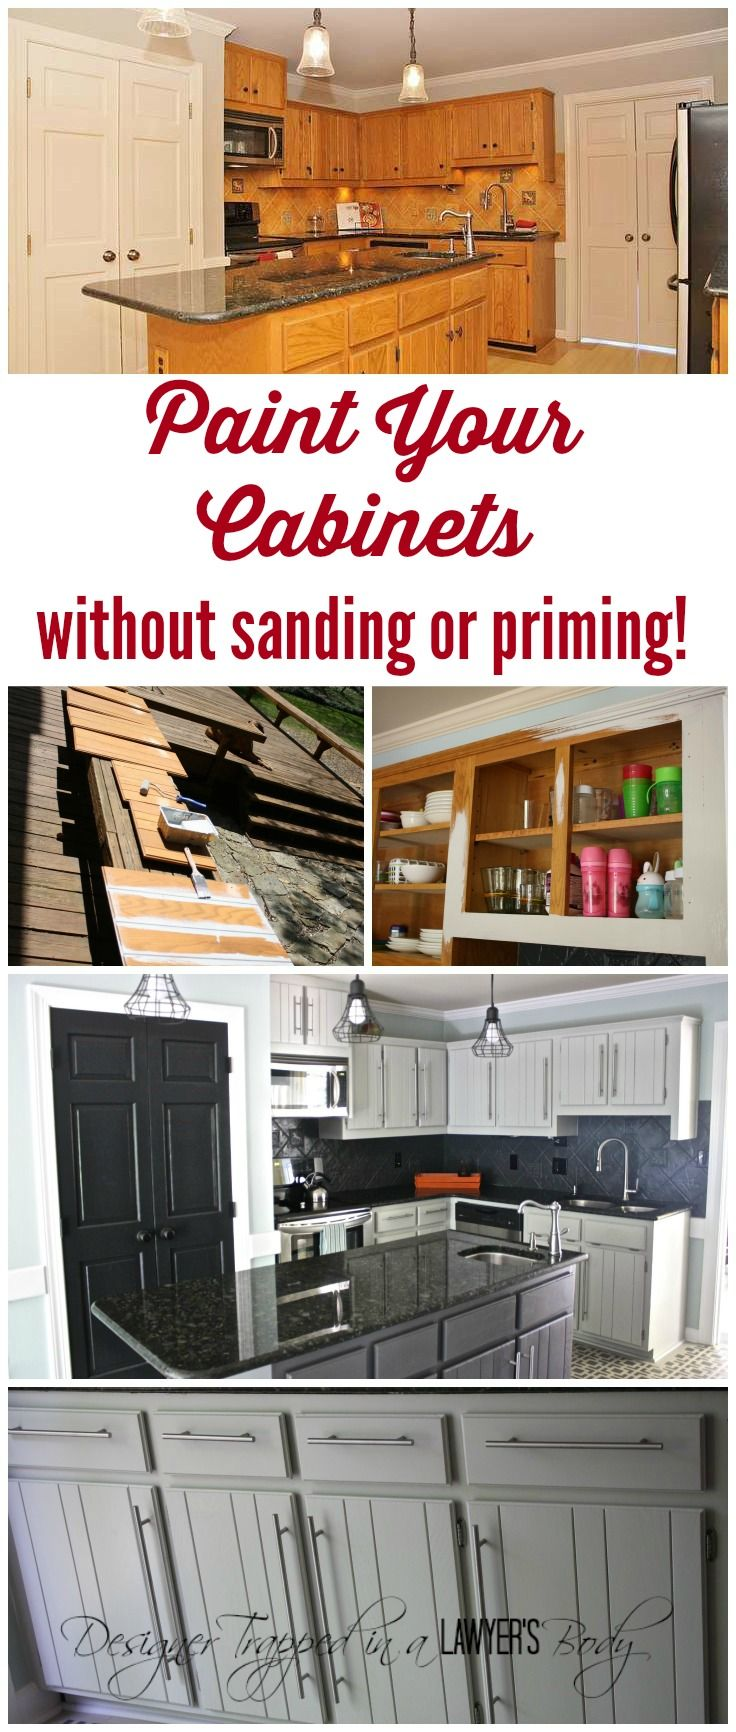 How To Paint Kitchen Cabinets Without Sanding Or Priming Step By Step Home Diy Home Remodeling Painting Kitchen Cabinets